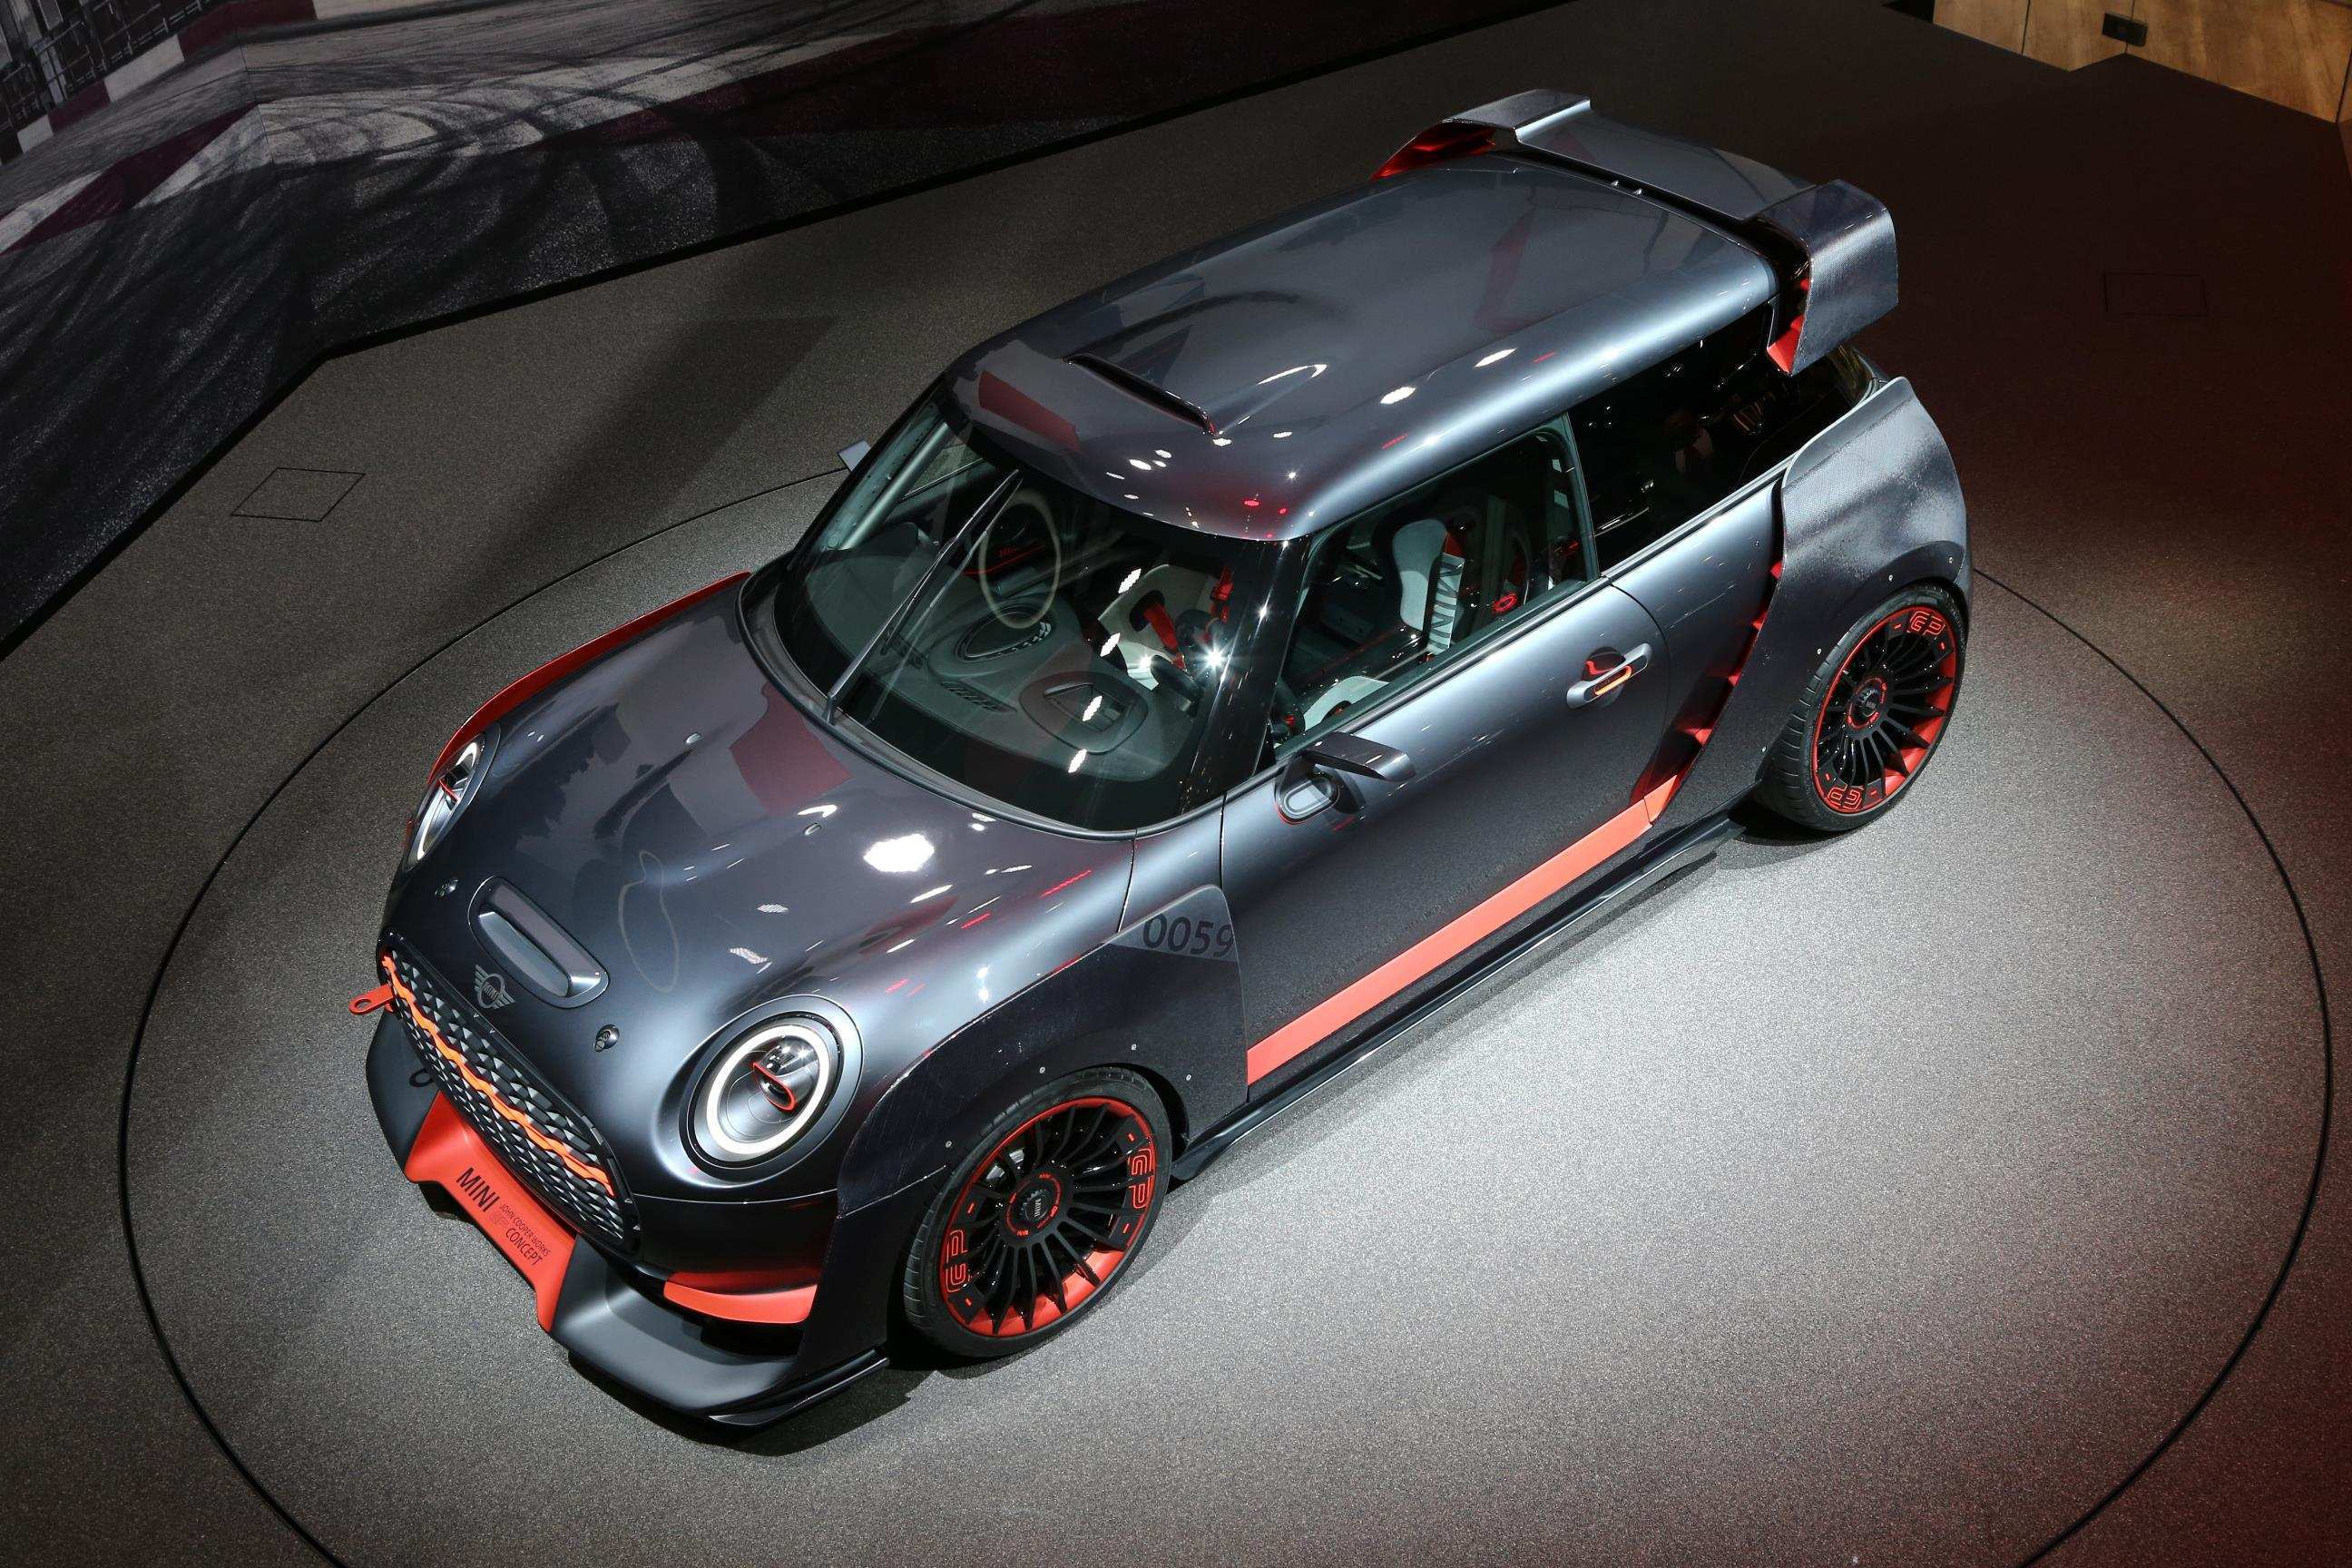 34 Concept of 2020 Mini Cooper Clubman History for 2020 Mini Cooper Clubman